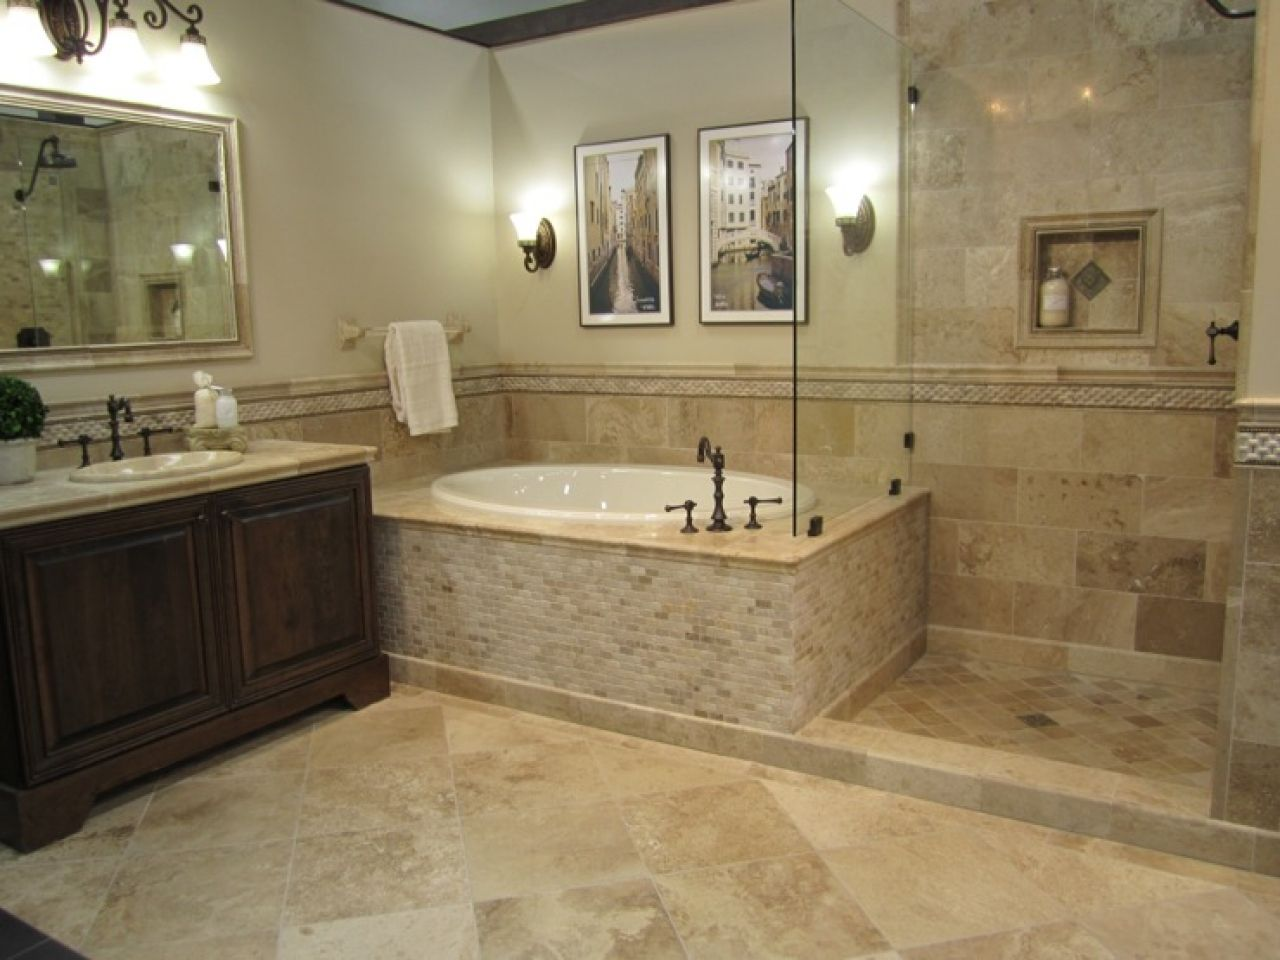 Bathroom fixtures travertine vanity honed driftwood for Master bathroom fixtures